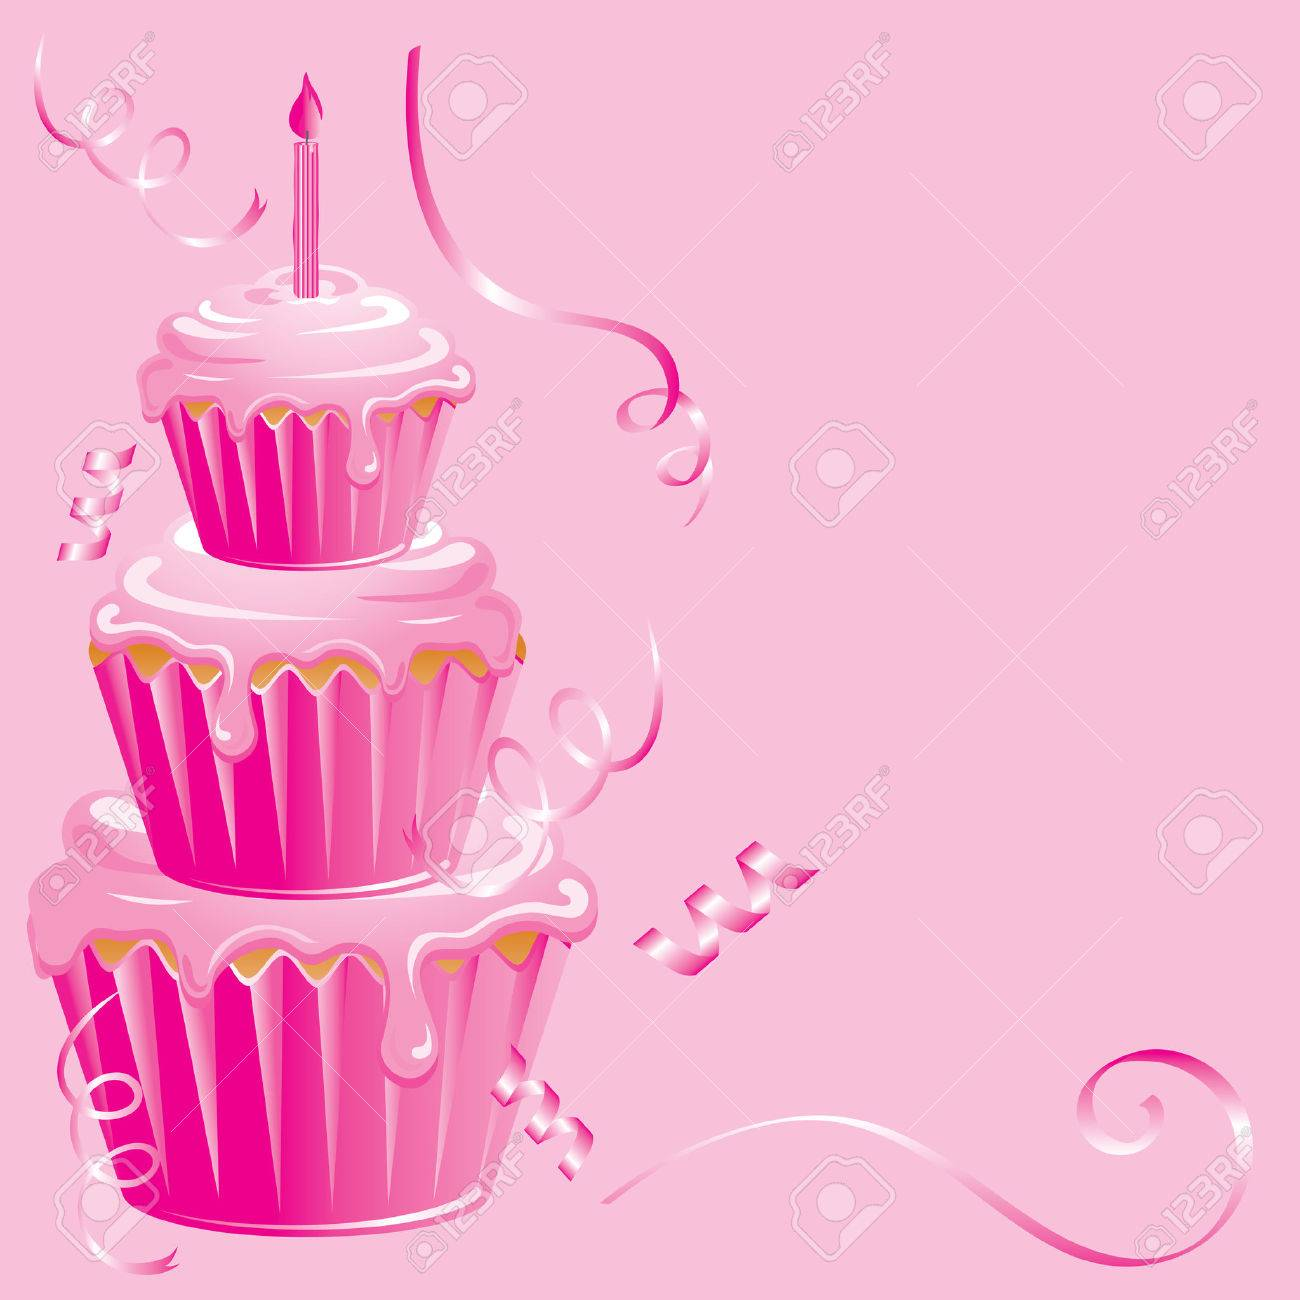 Pink Cupcake Birthday Party On Pink Background With Ribbon Streamers